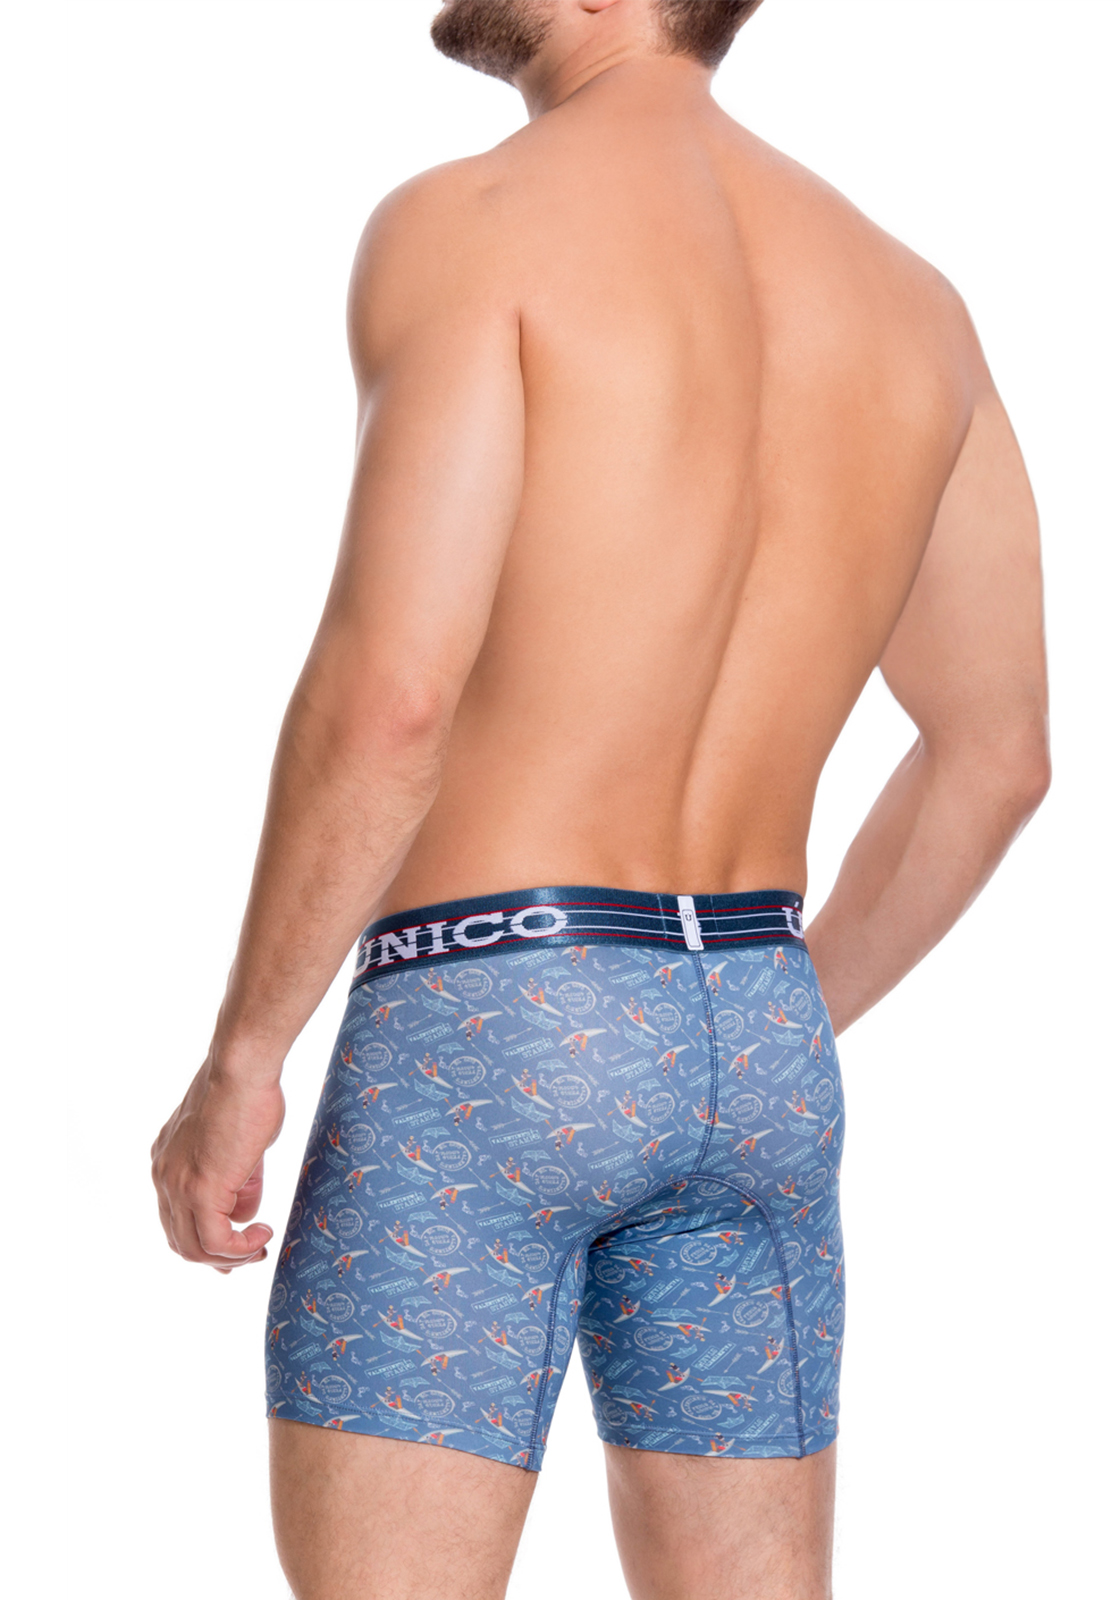 Mundo Unico print L Boxer Cup Long Leg Boating